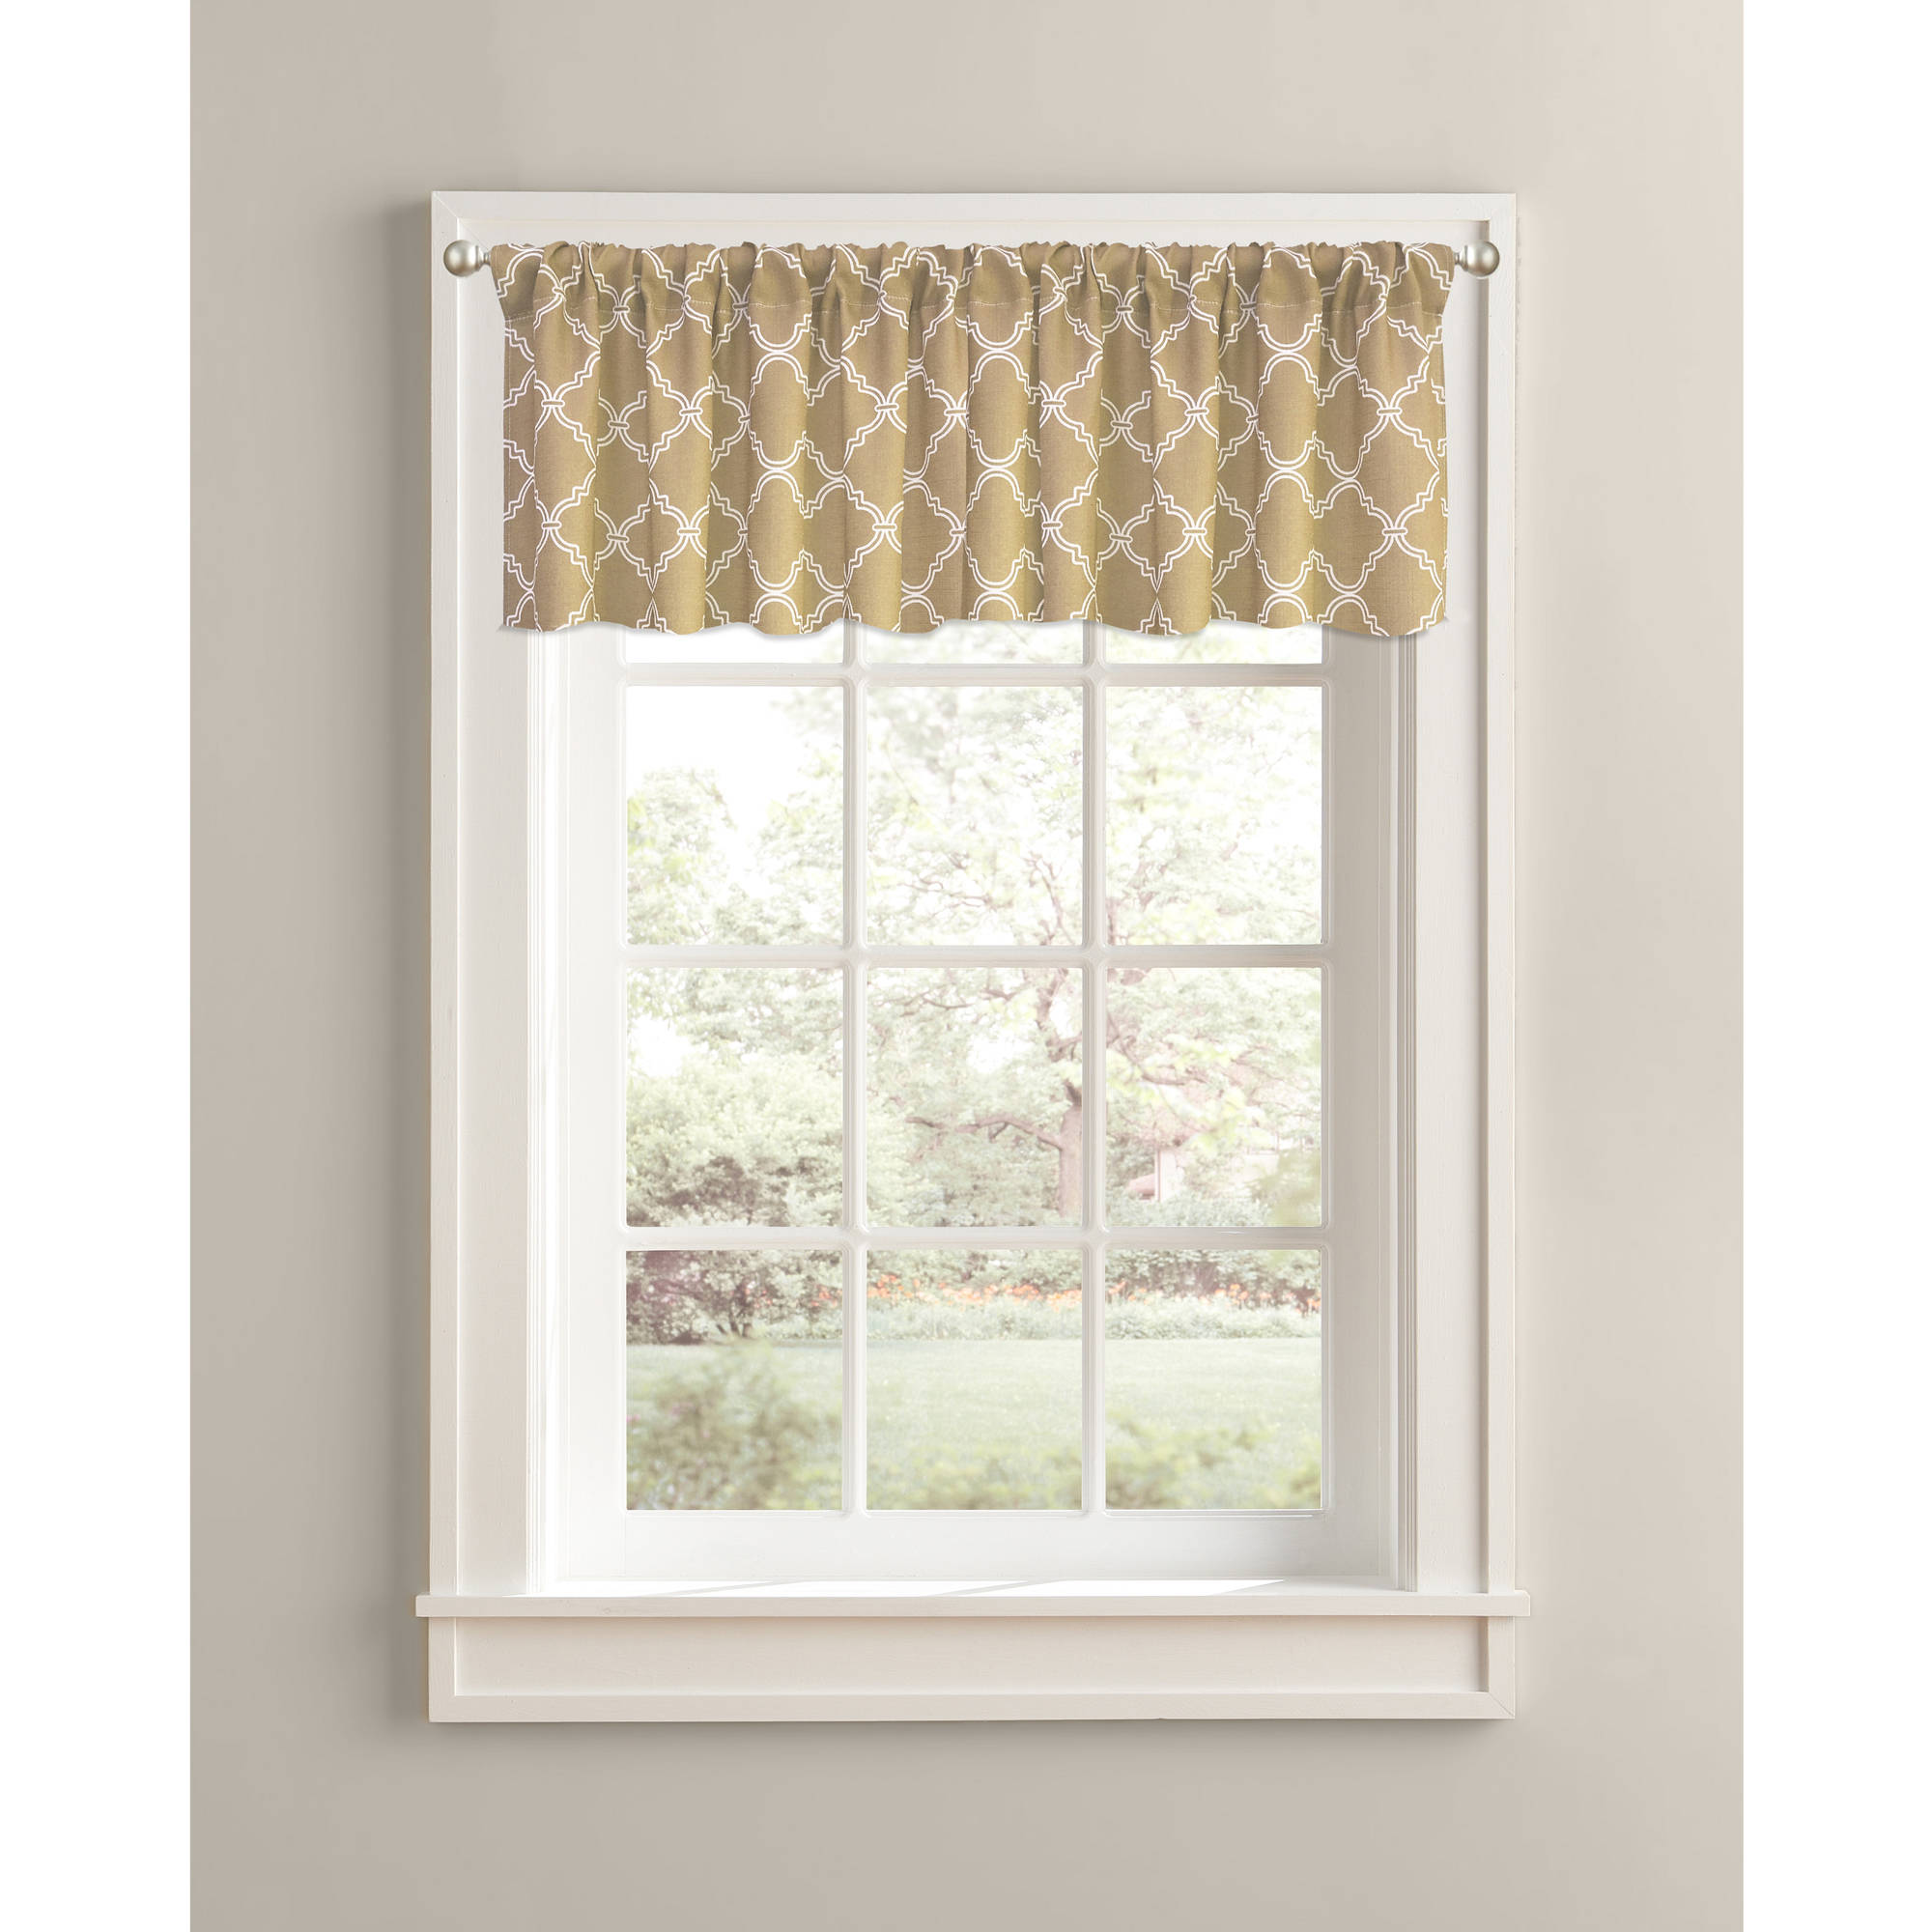 category window treatments for of valance blinds patterns collection vertical awesome scarf ideas valances room living